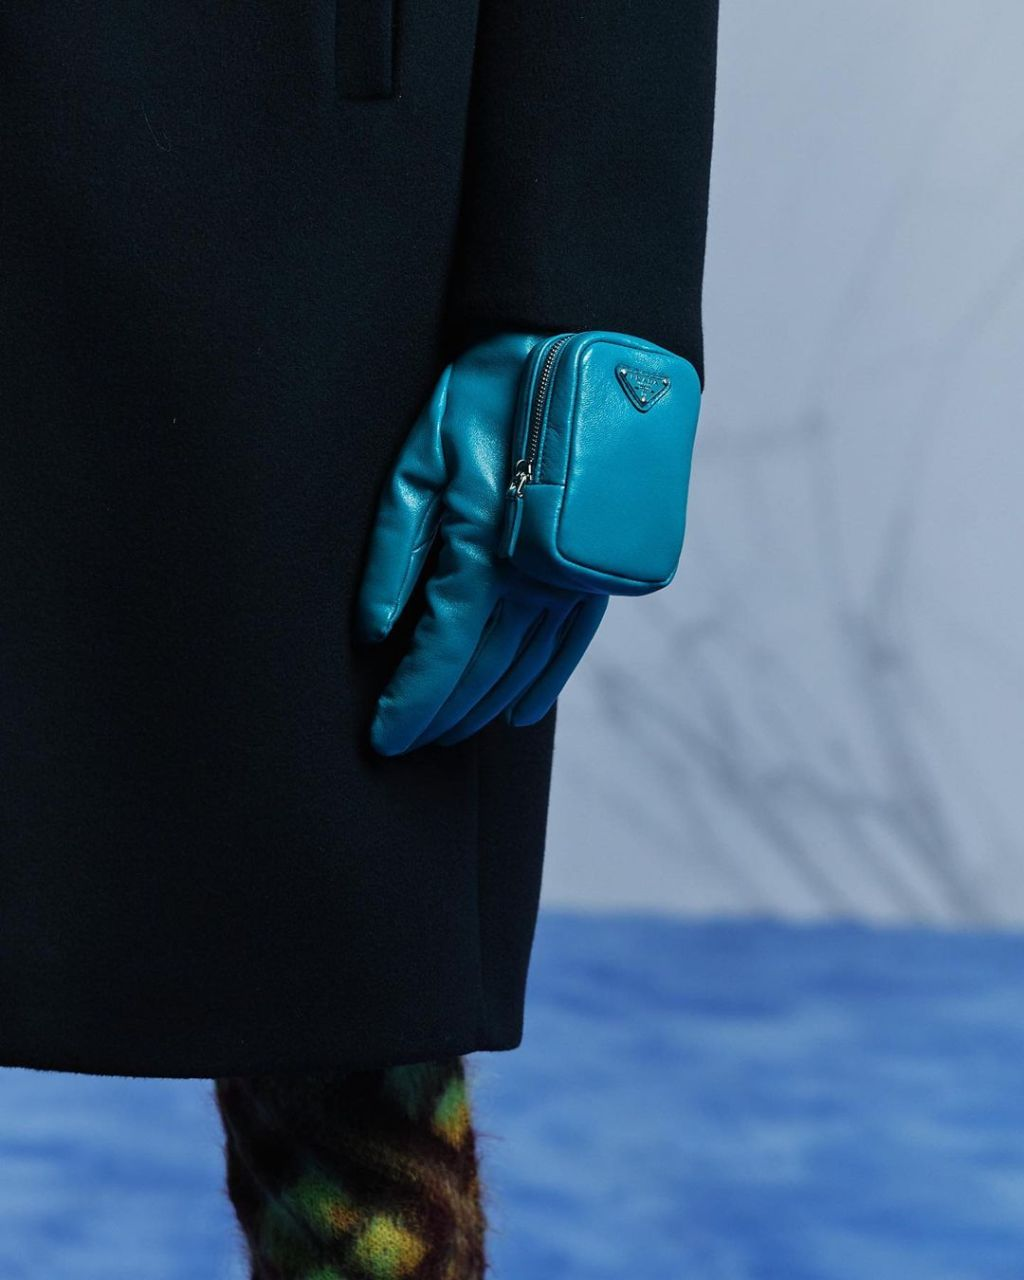 Prada Menswear Fall/Winter 2021-22